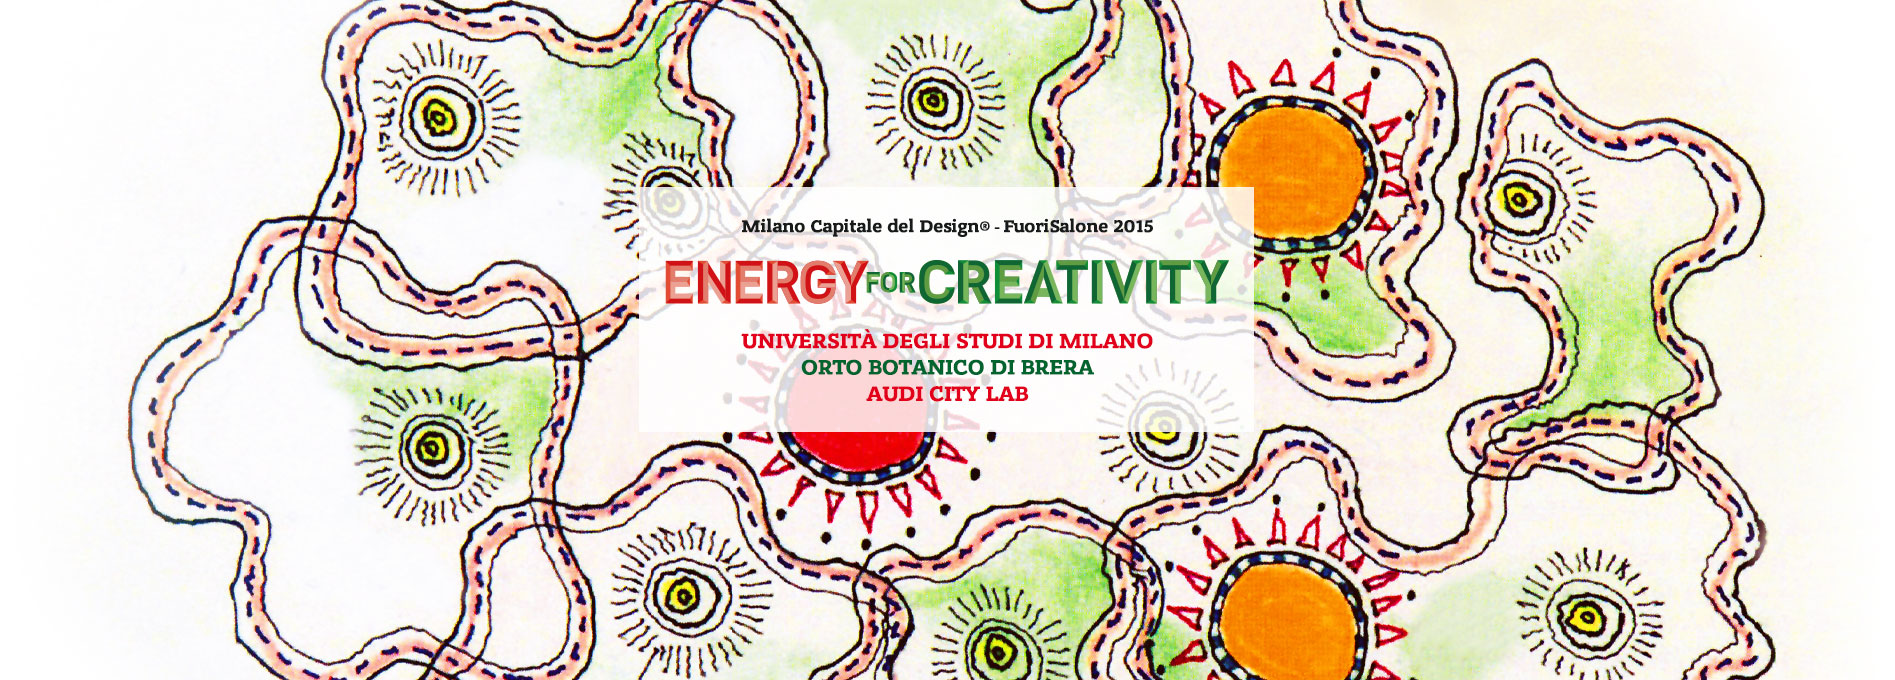 Fuori Salone 2015<br/>ENERGY FOR CREATIVITY<br/>an event by INTERNI